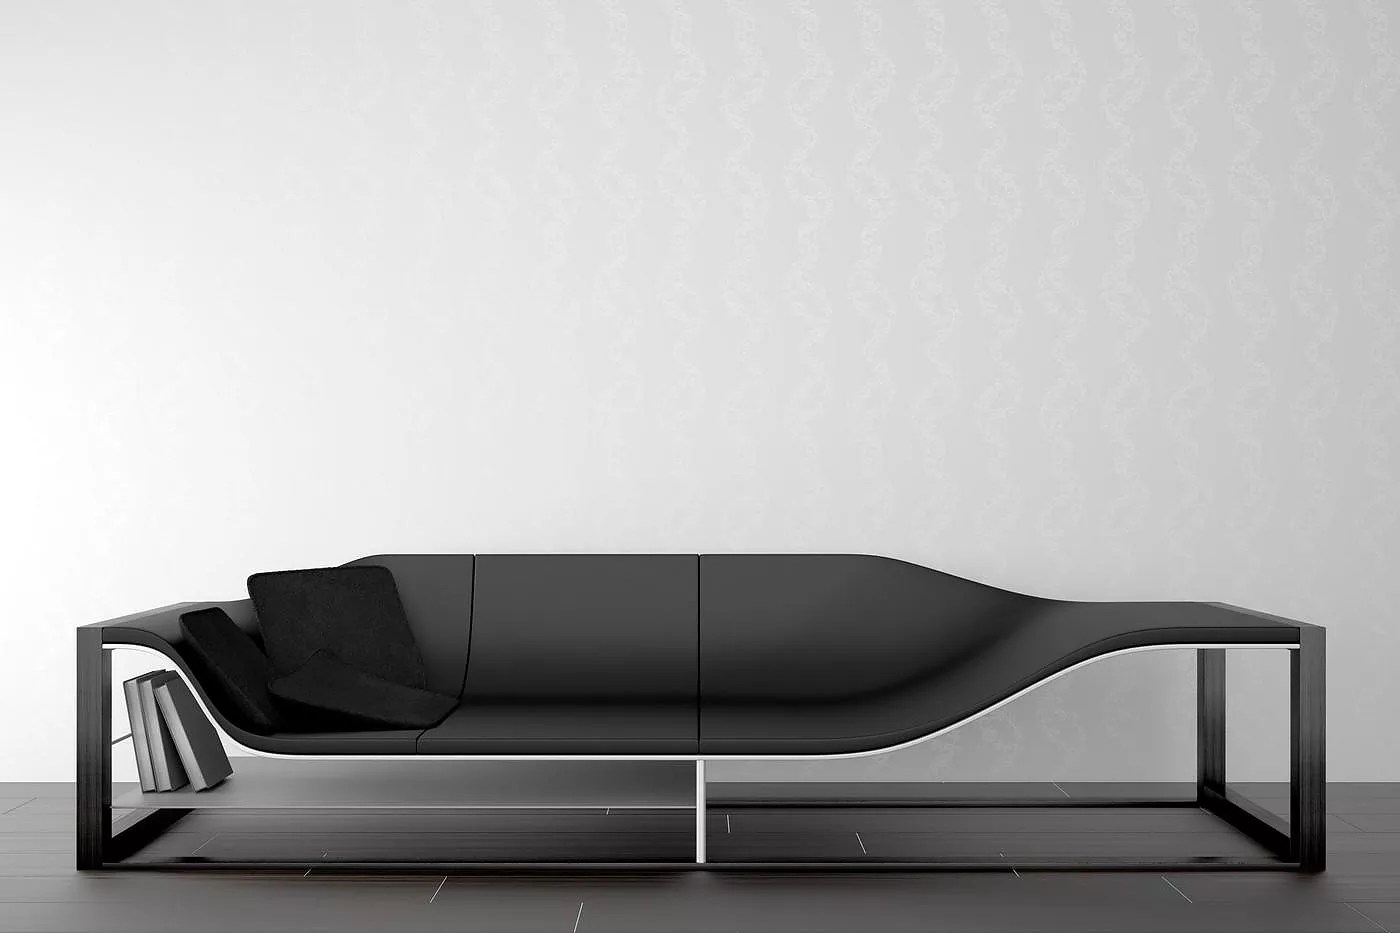 sofa rph mainstay sleeper with memory foam mattress by fabio novembre for cappellini design is this bucefalo emanuele canova